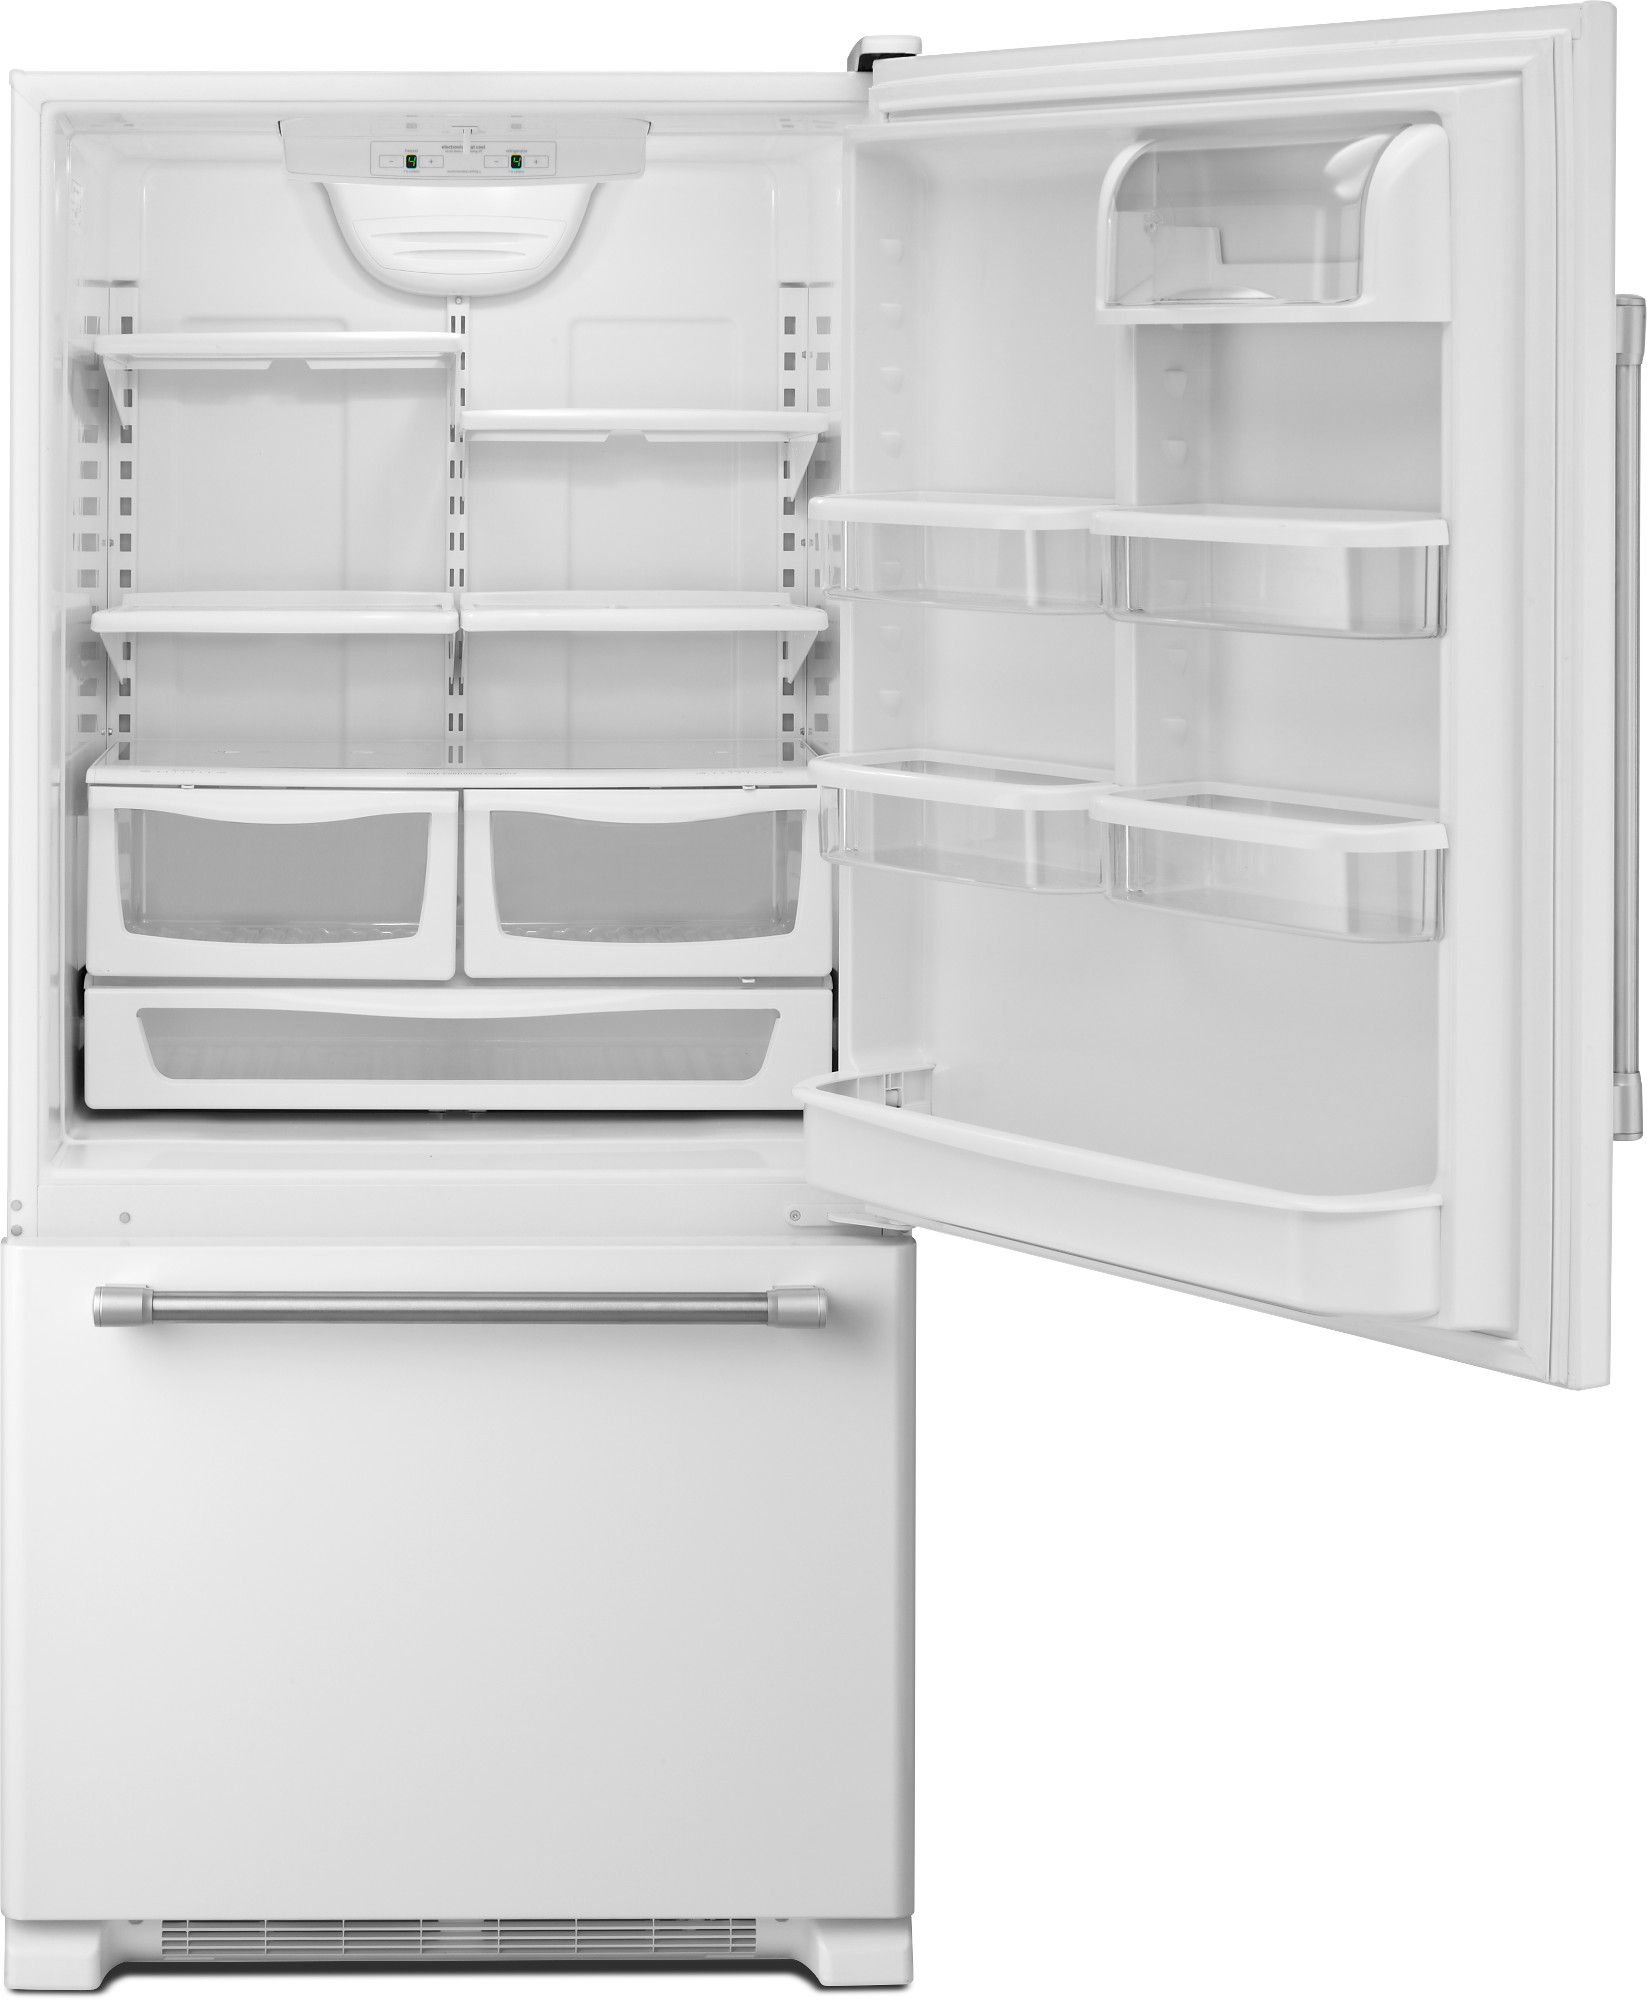 Maytag MBF2258DEH 22 cu. ft. Single Door Bottom Freezer Refrigerator - White